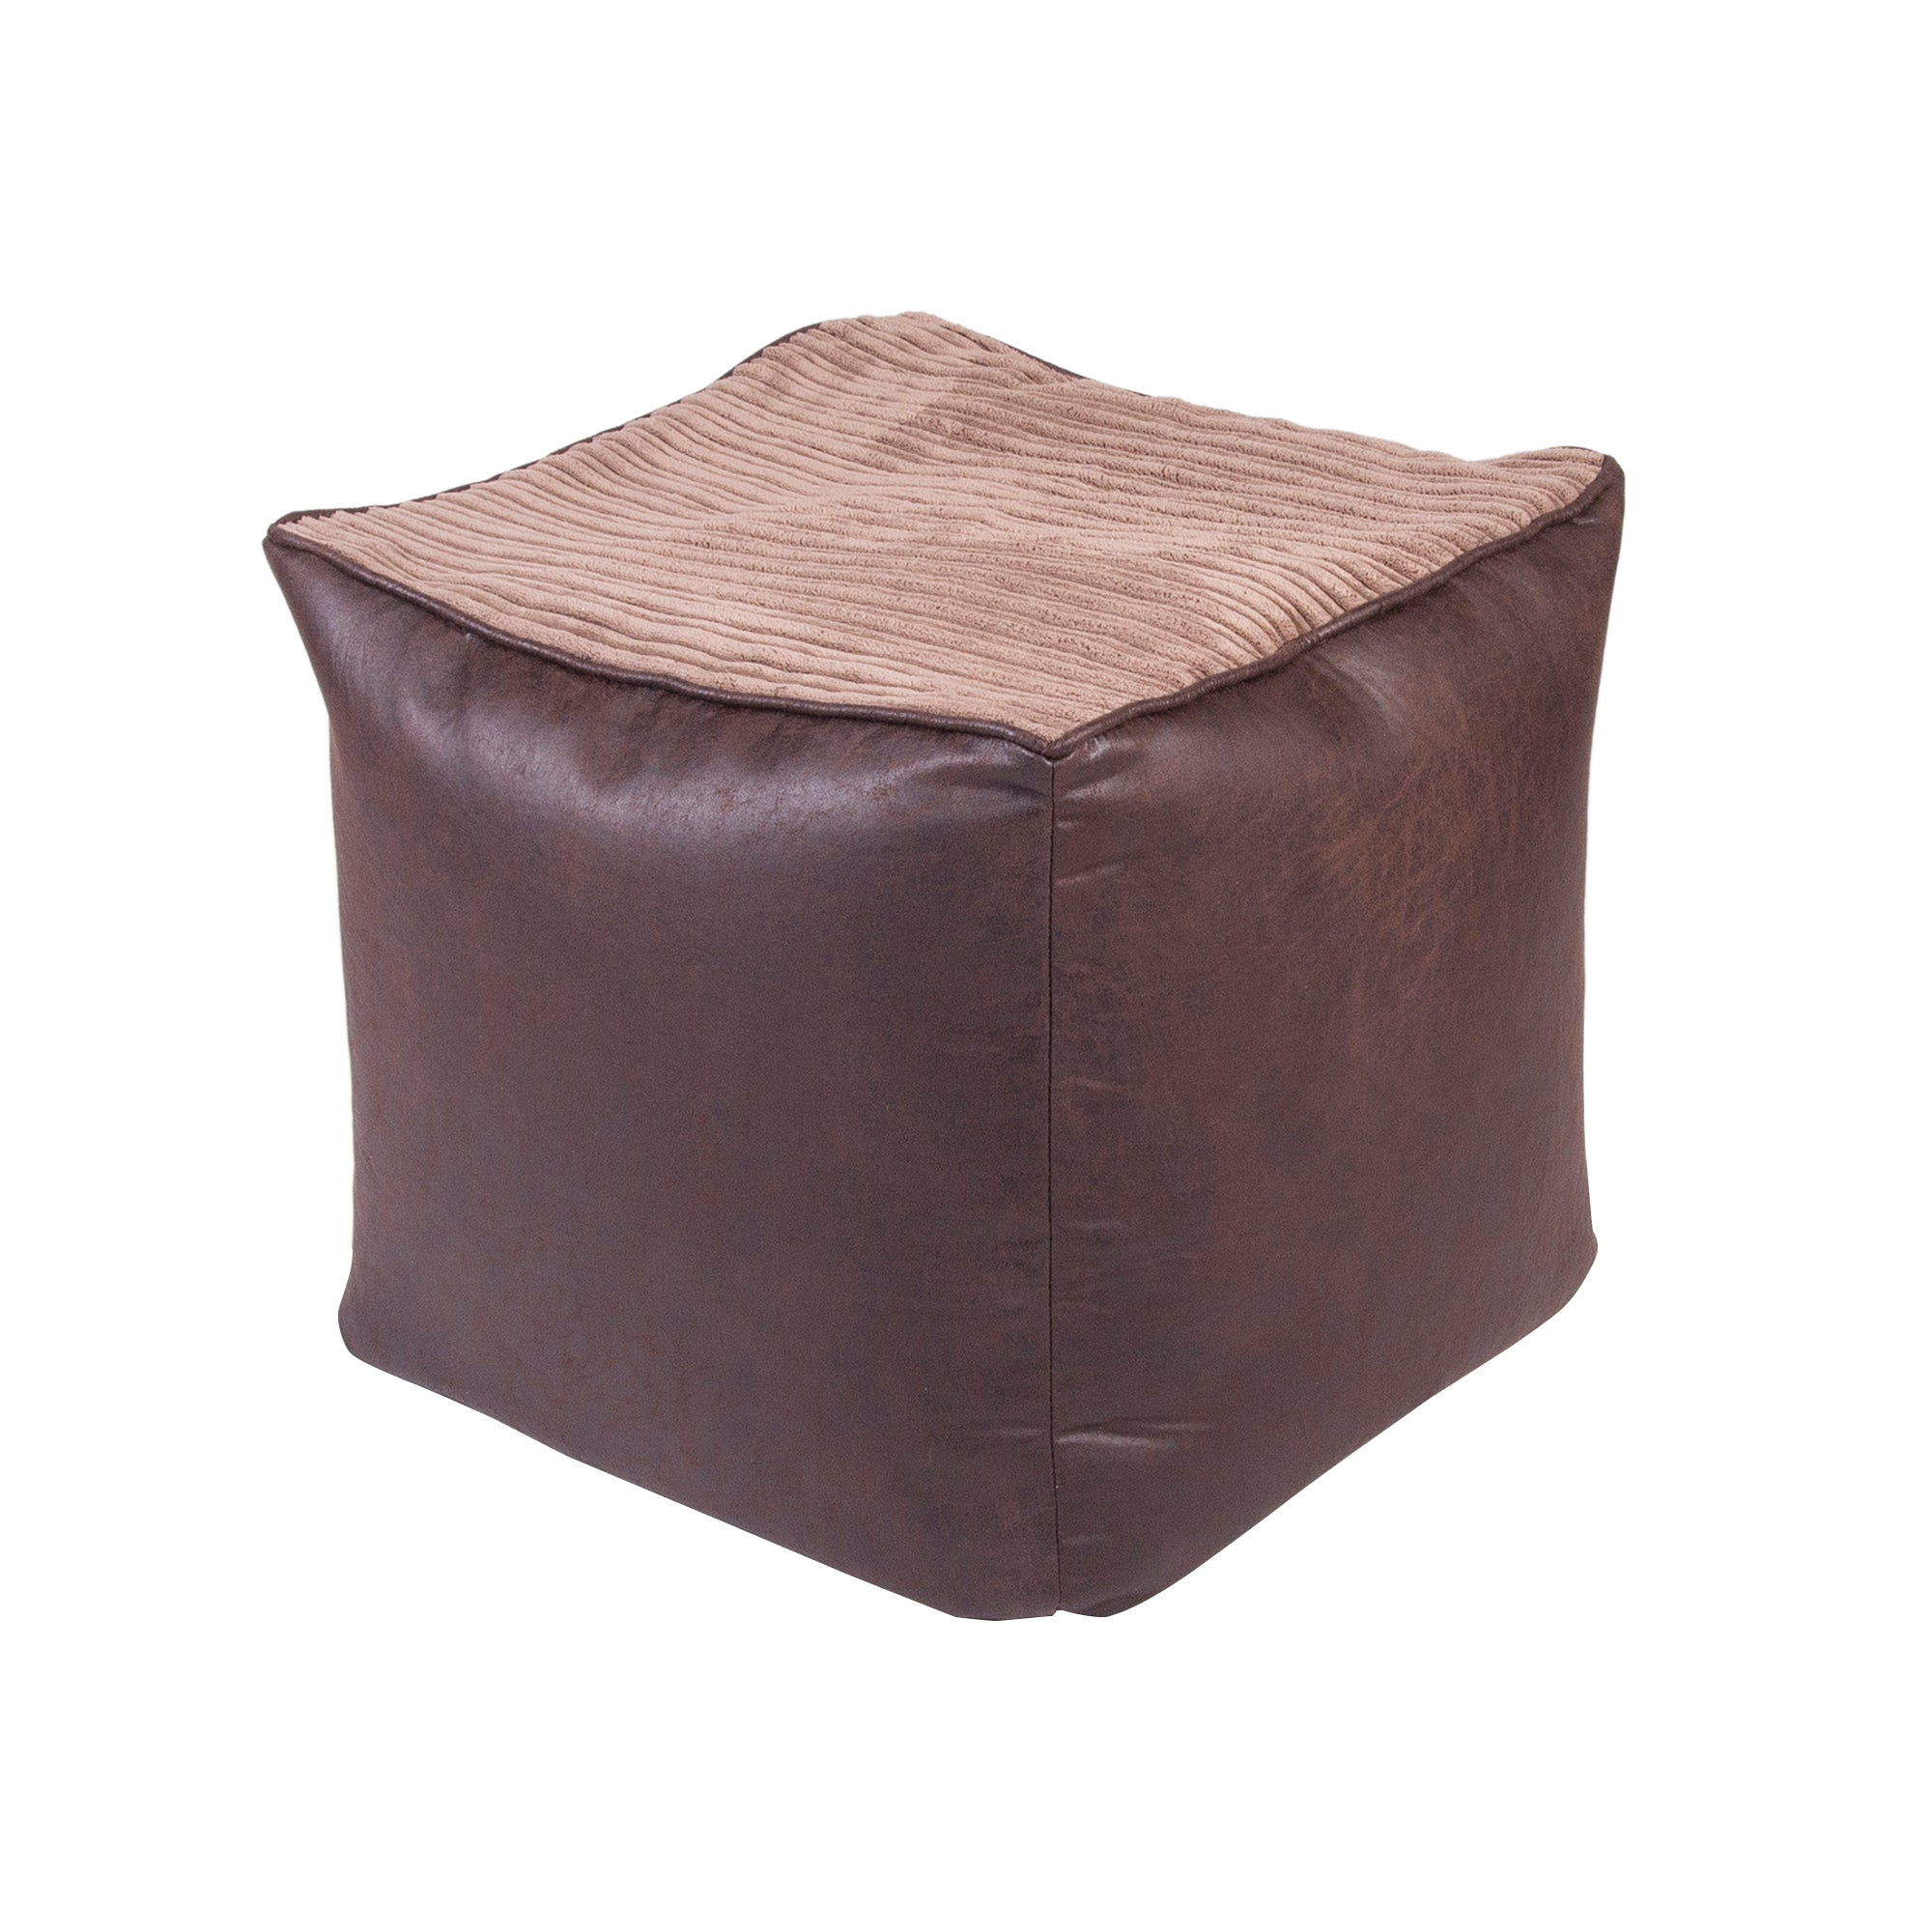 Chocolate Jumbo Cord Bean Cube